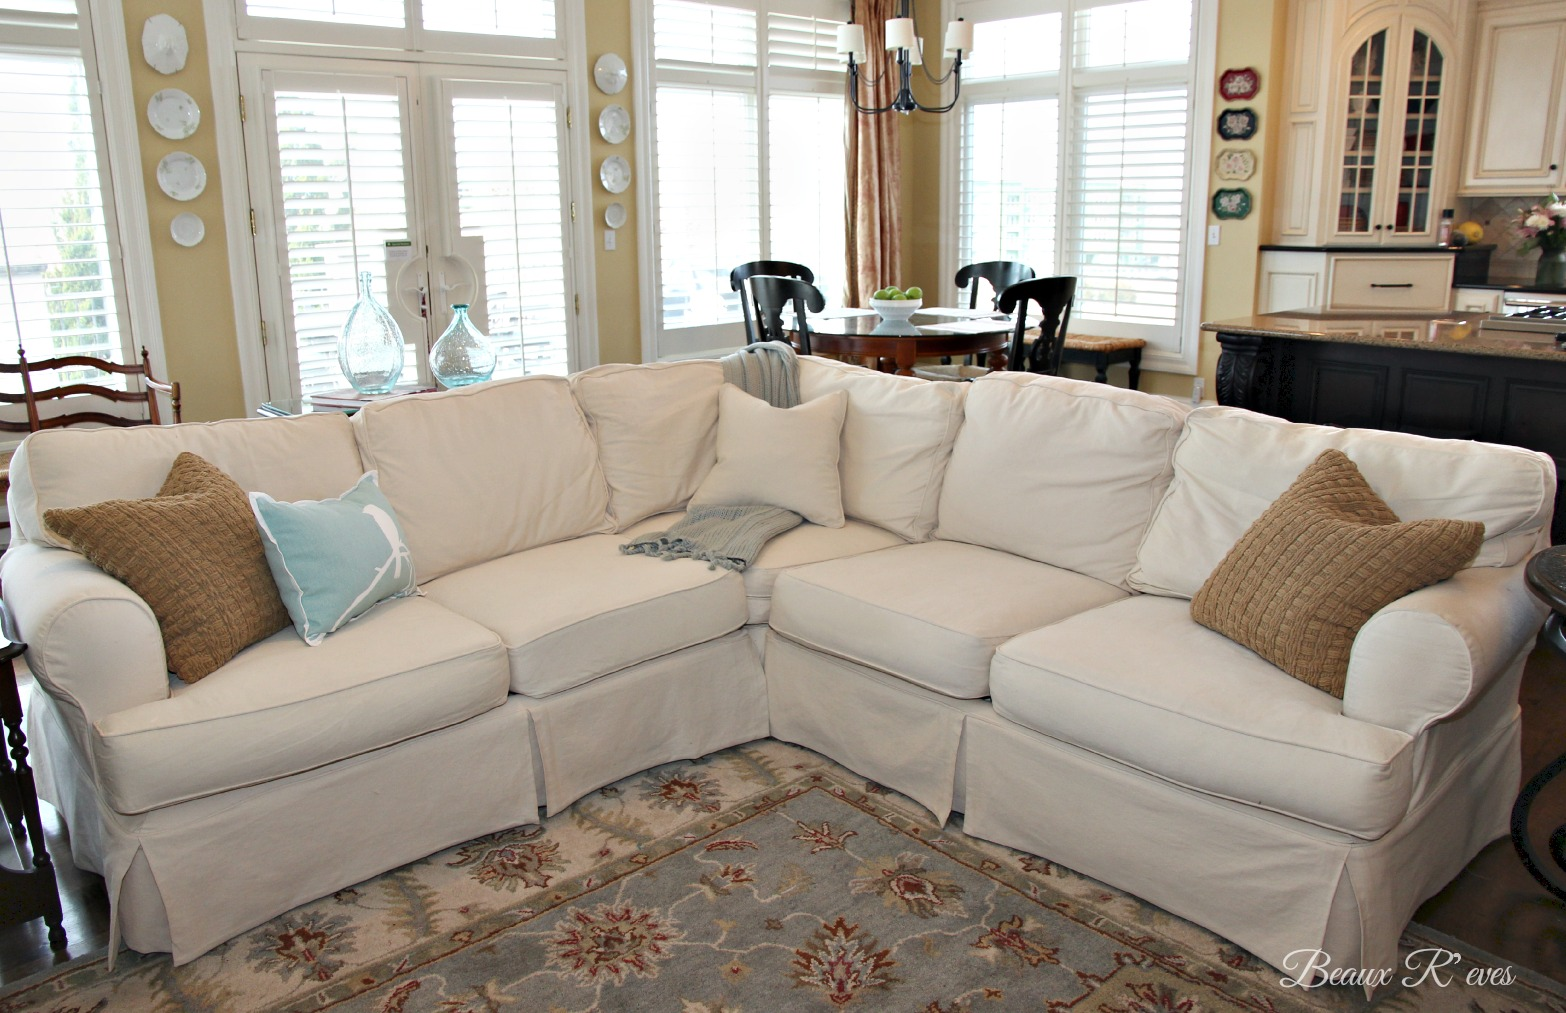 Pottery Barn Knock Off JCPenney Slipcovered Sectional Review : pb comfort sectional - Sectionals, Sofas & Couches